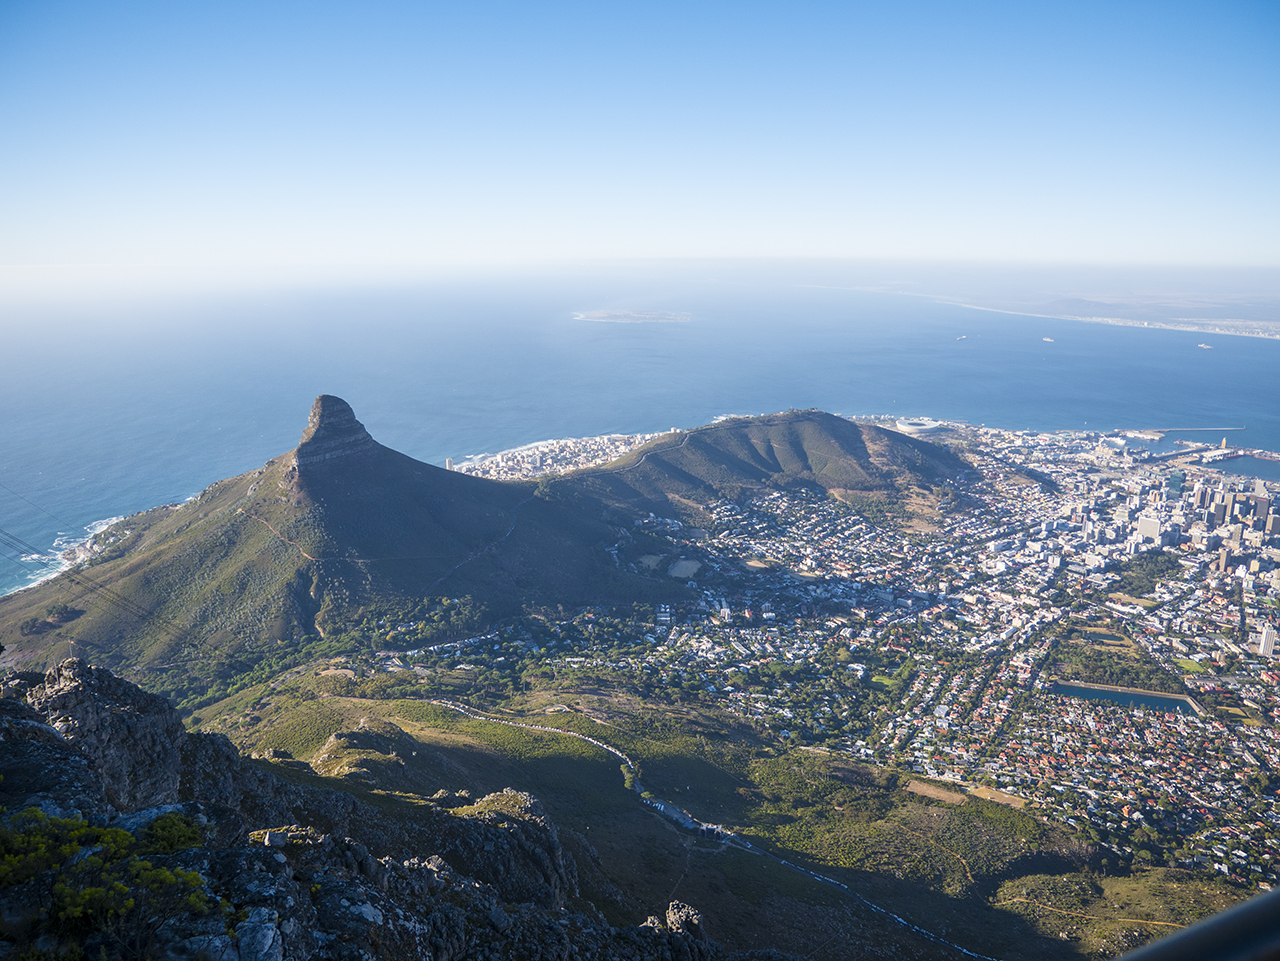 One Week in Cape Town - Table Mountain